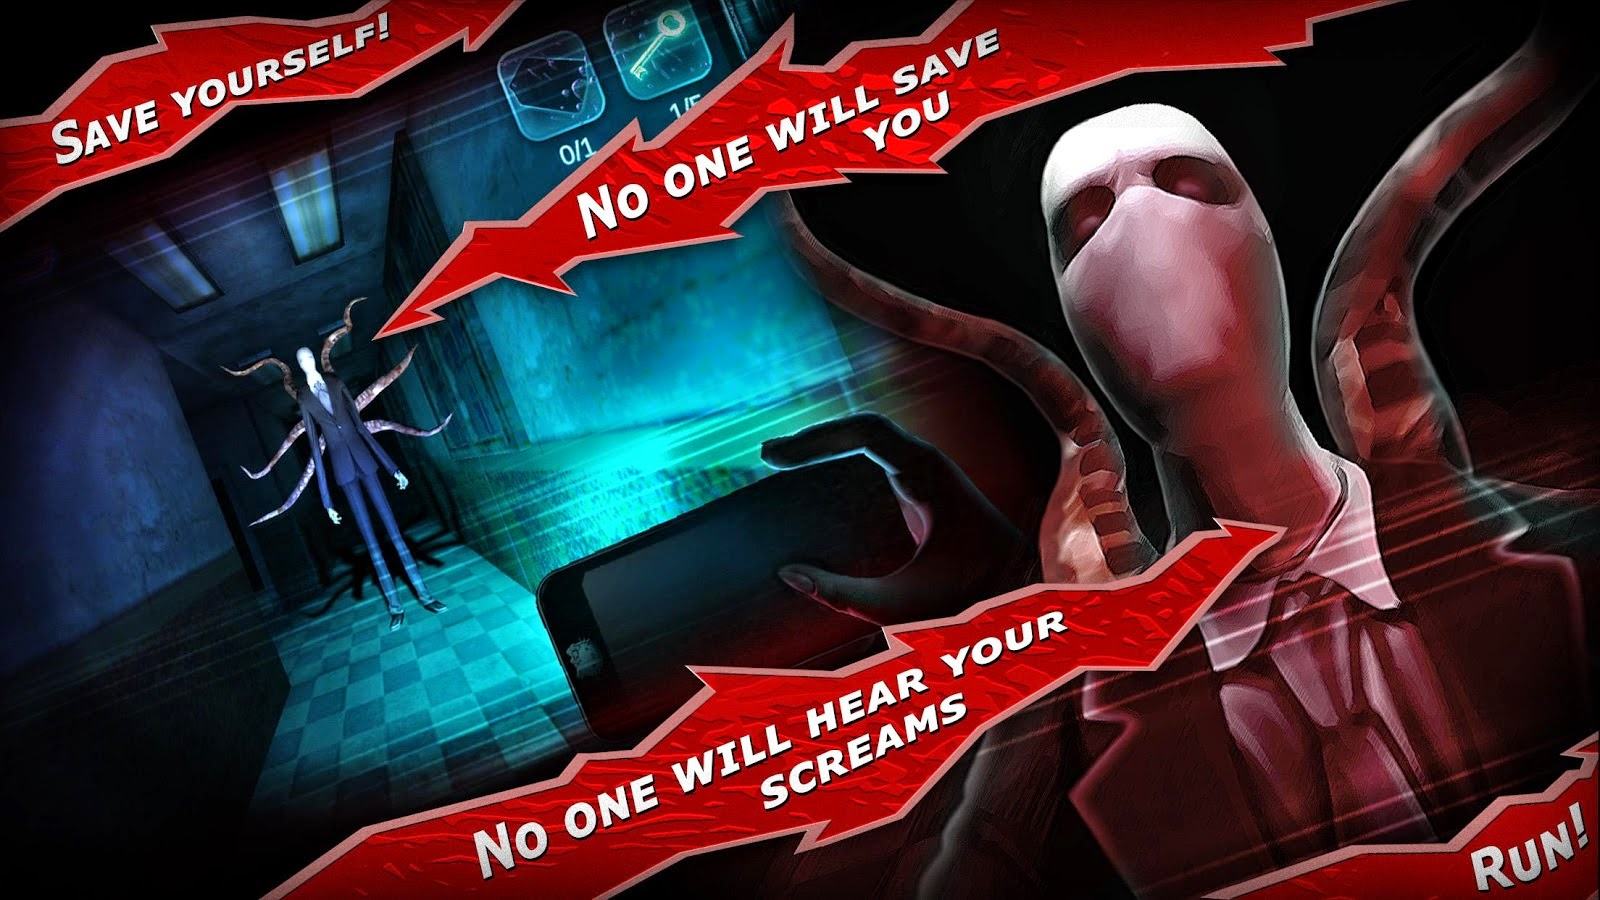 Download Slender Man Origins Apk